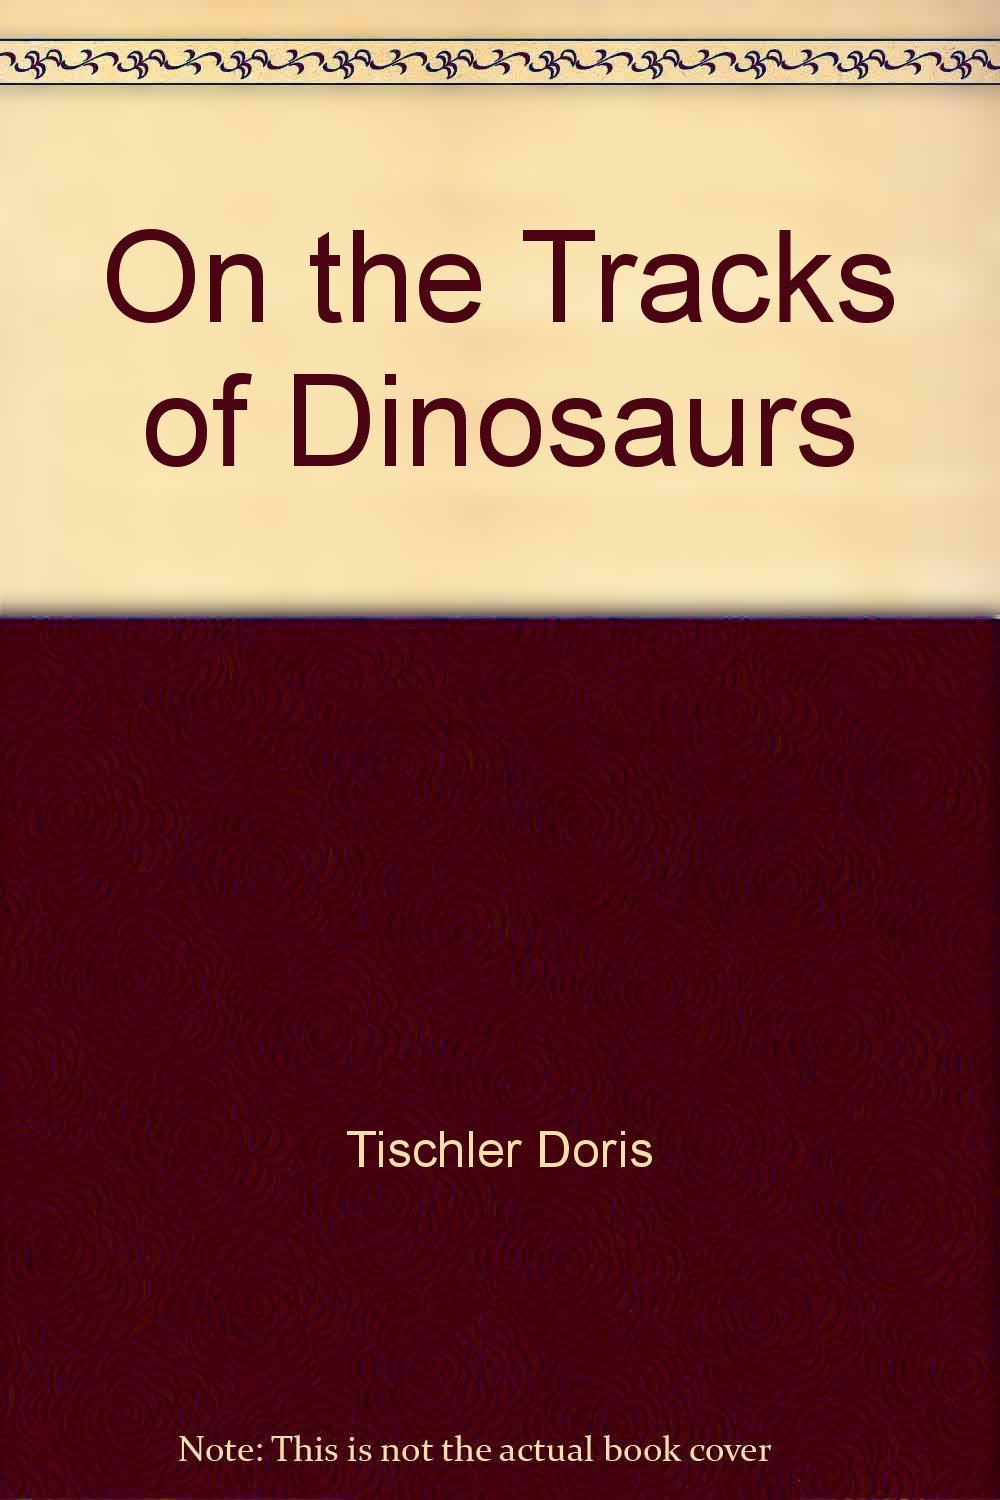 On the Tracks of Dinosaurs